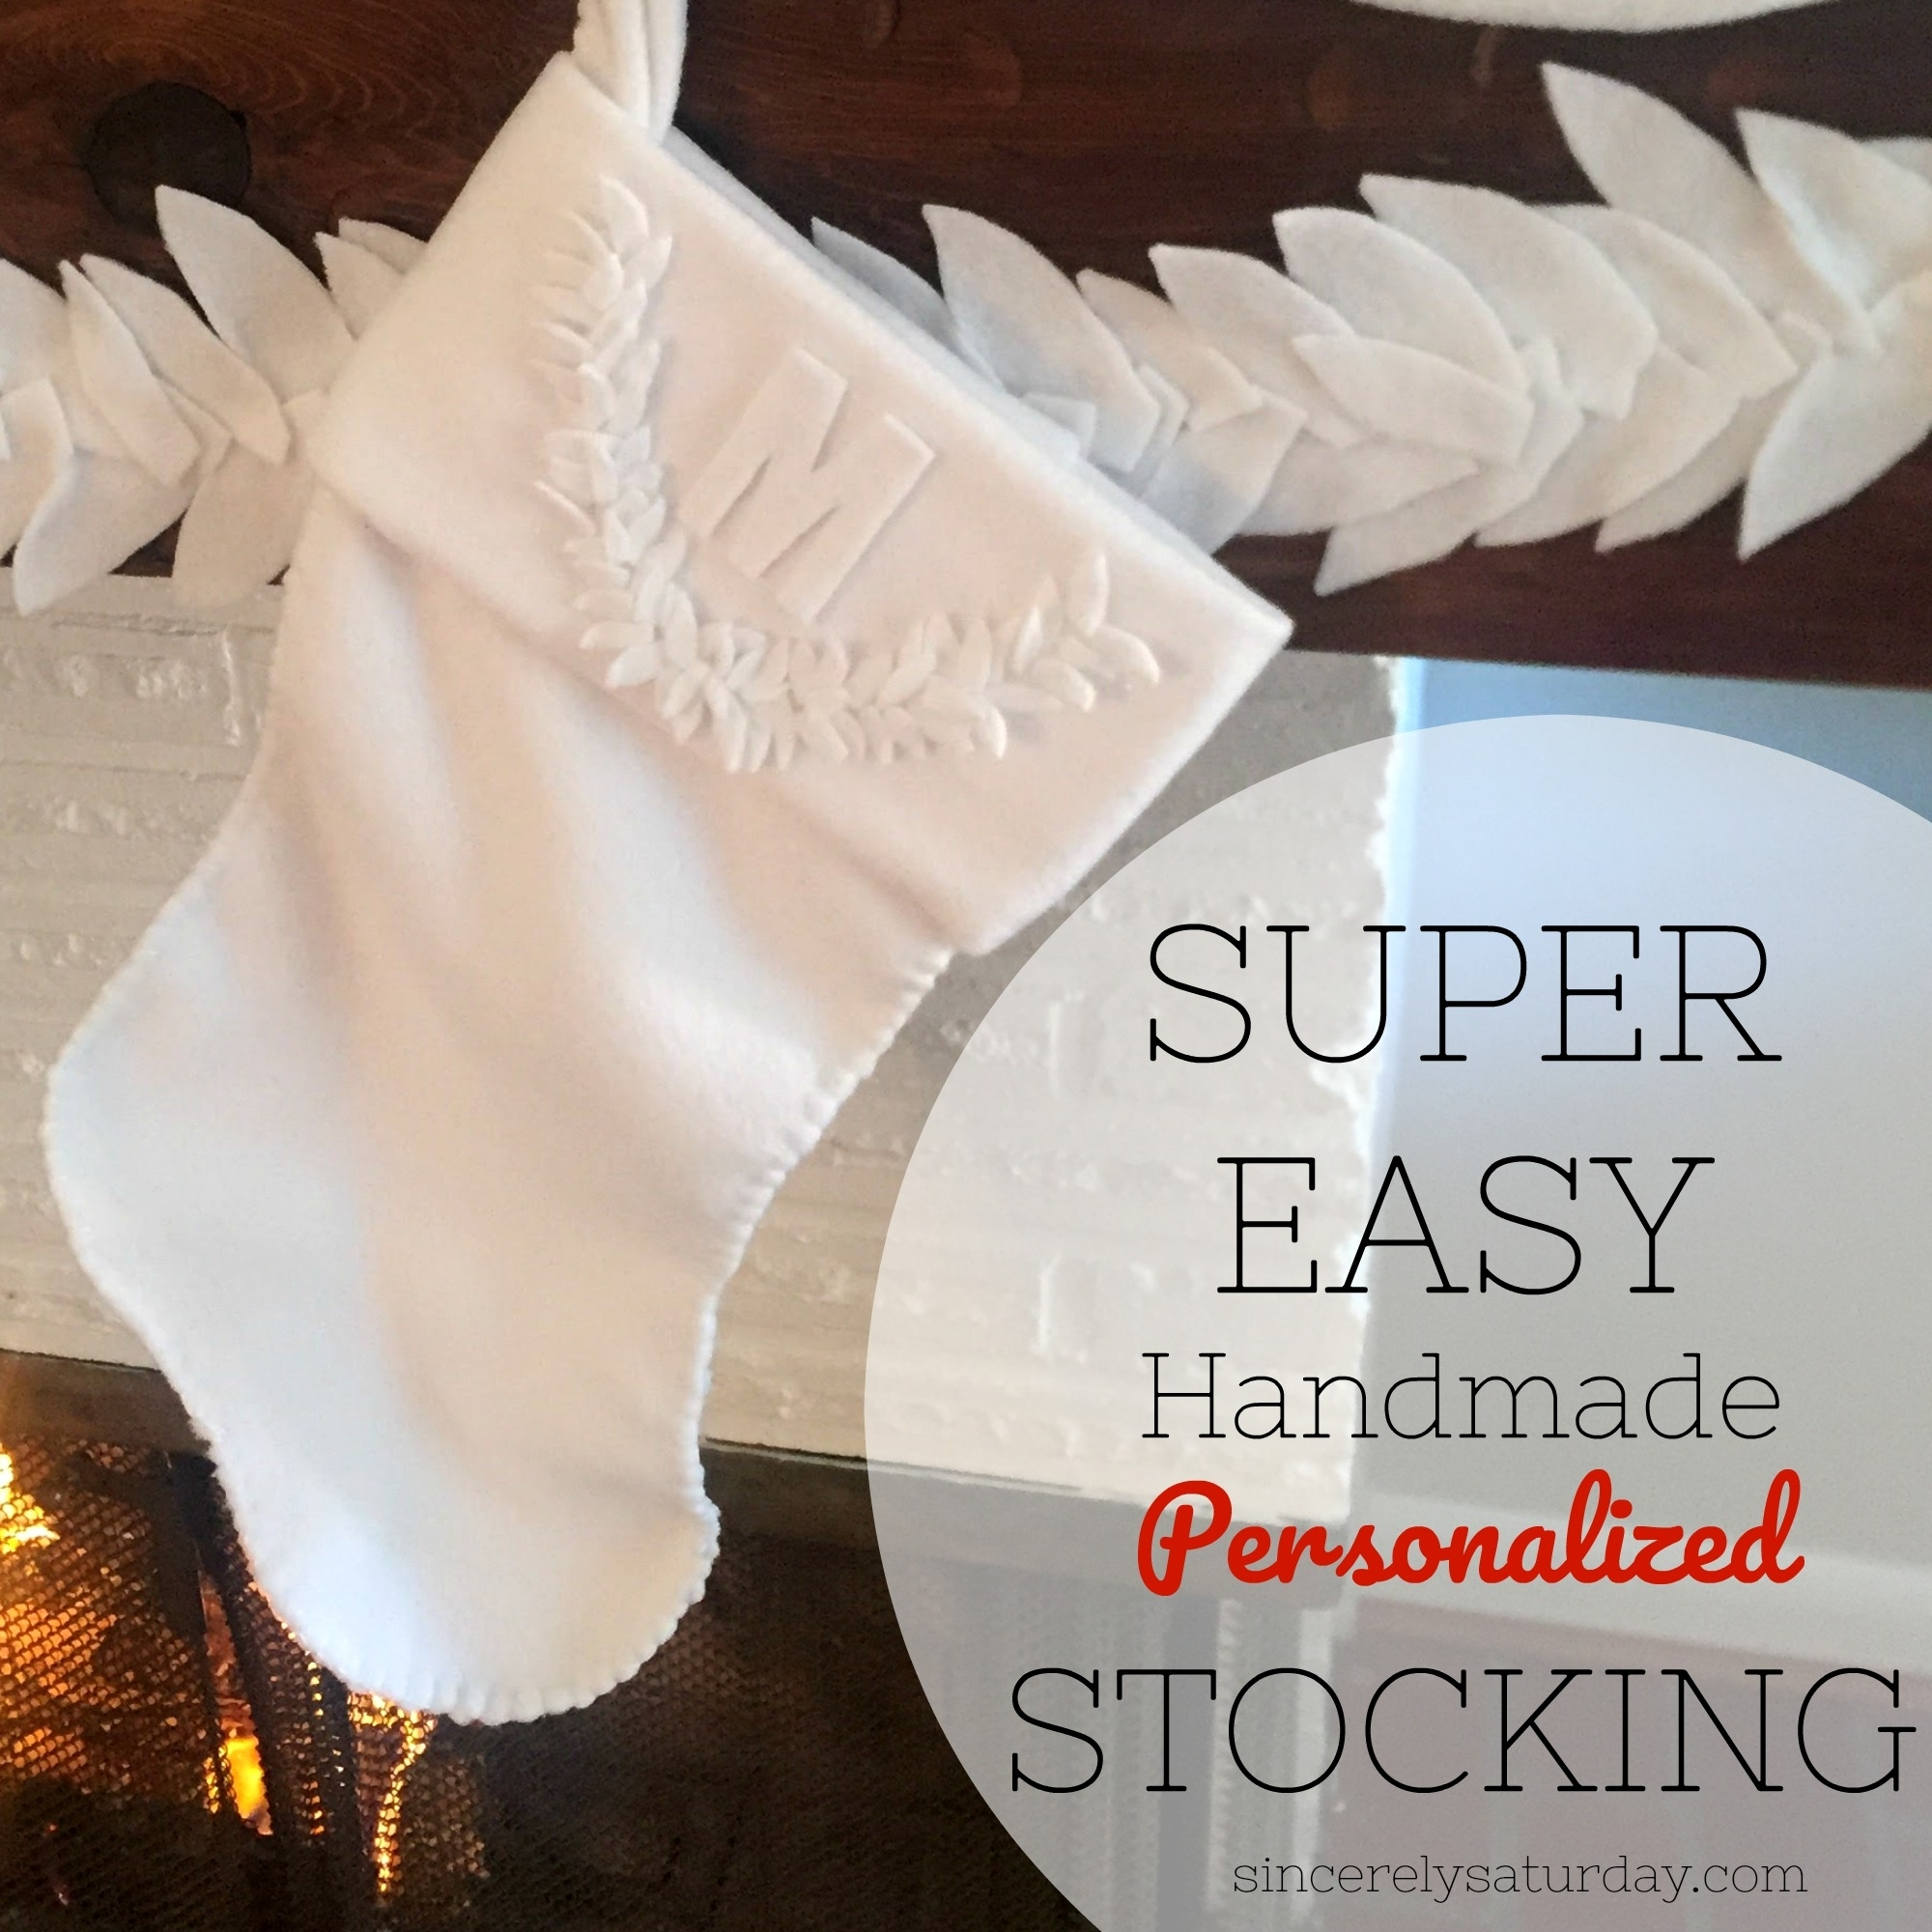 Super easy handmade personalized stocking